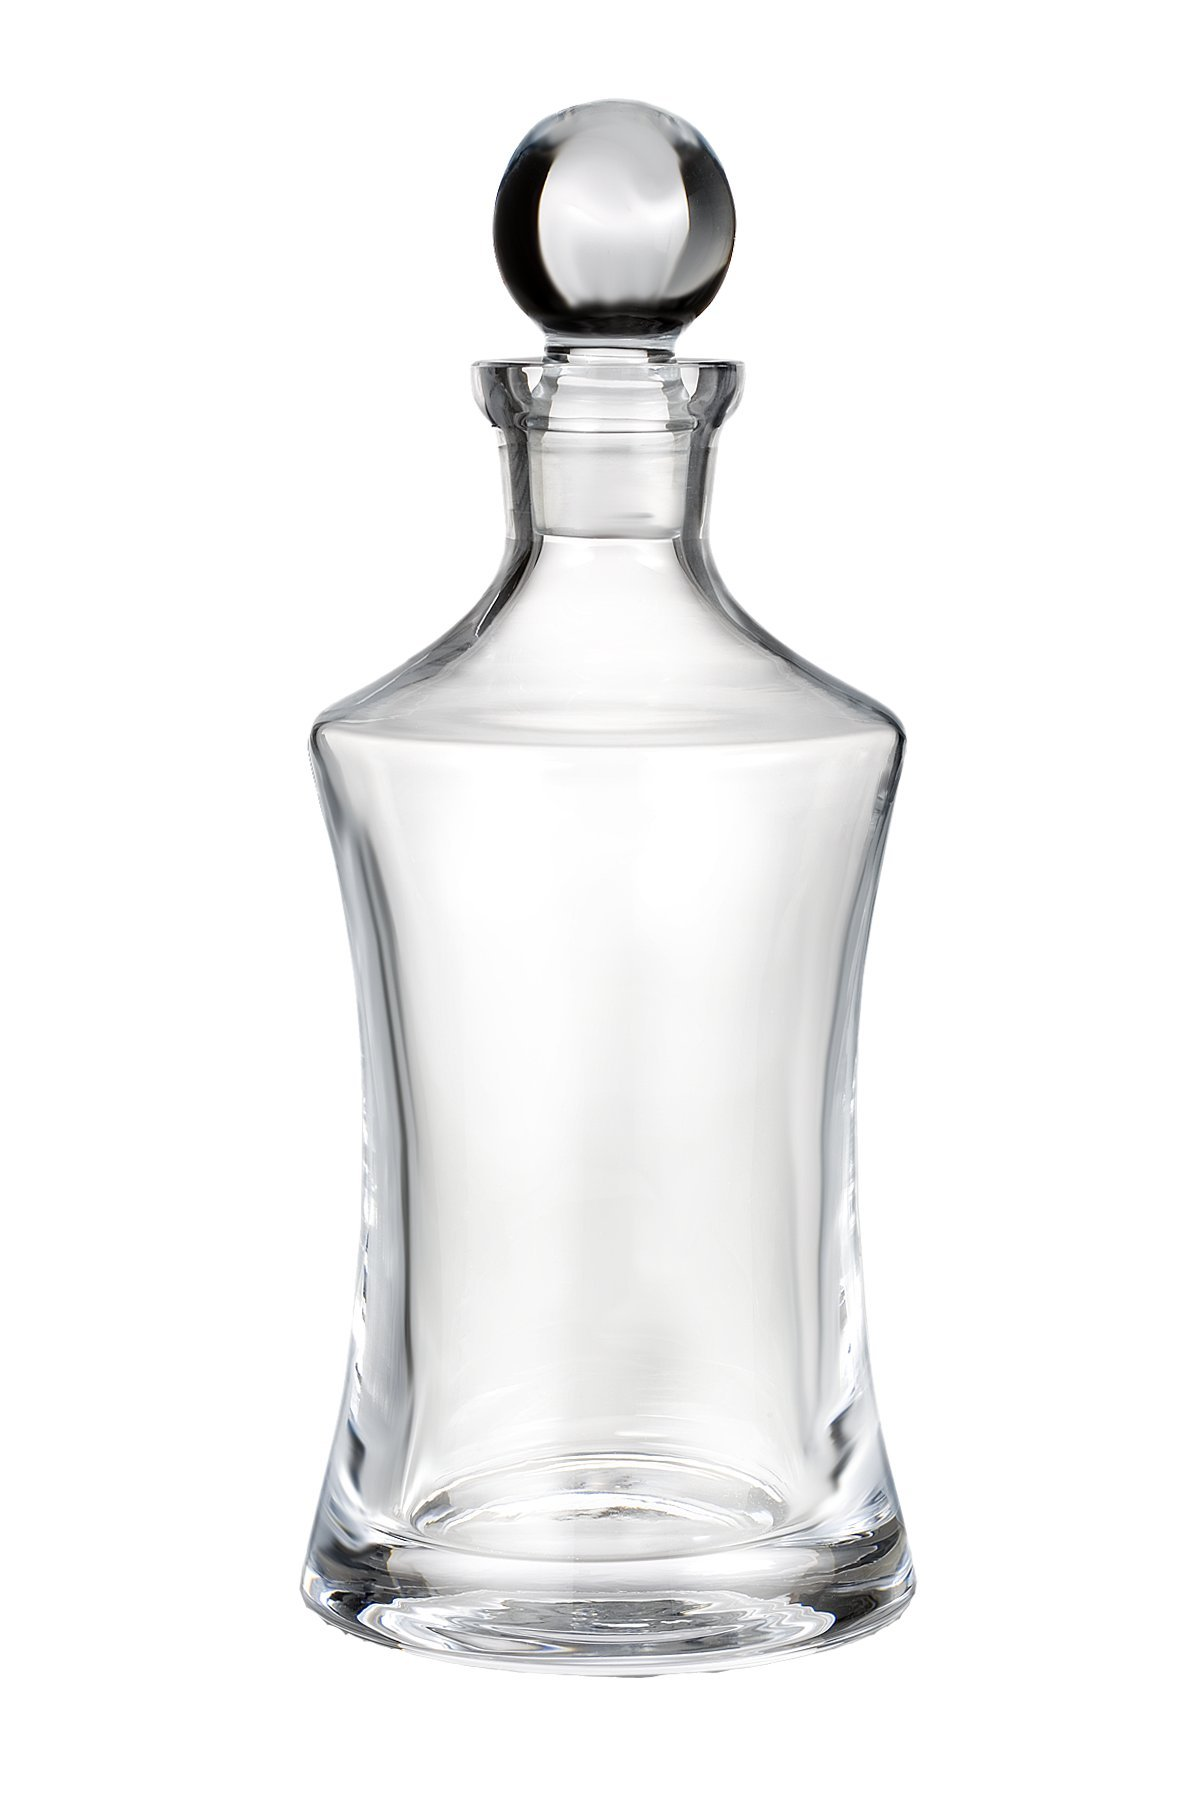 Marquis by Waterford 154447 Art of Mixology Vintage Hour Glass Decanter, 29-Ounce by Marquis By Waterford